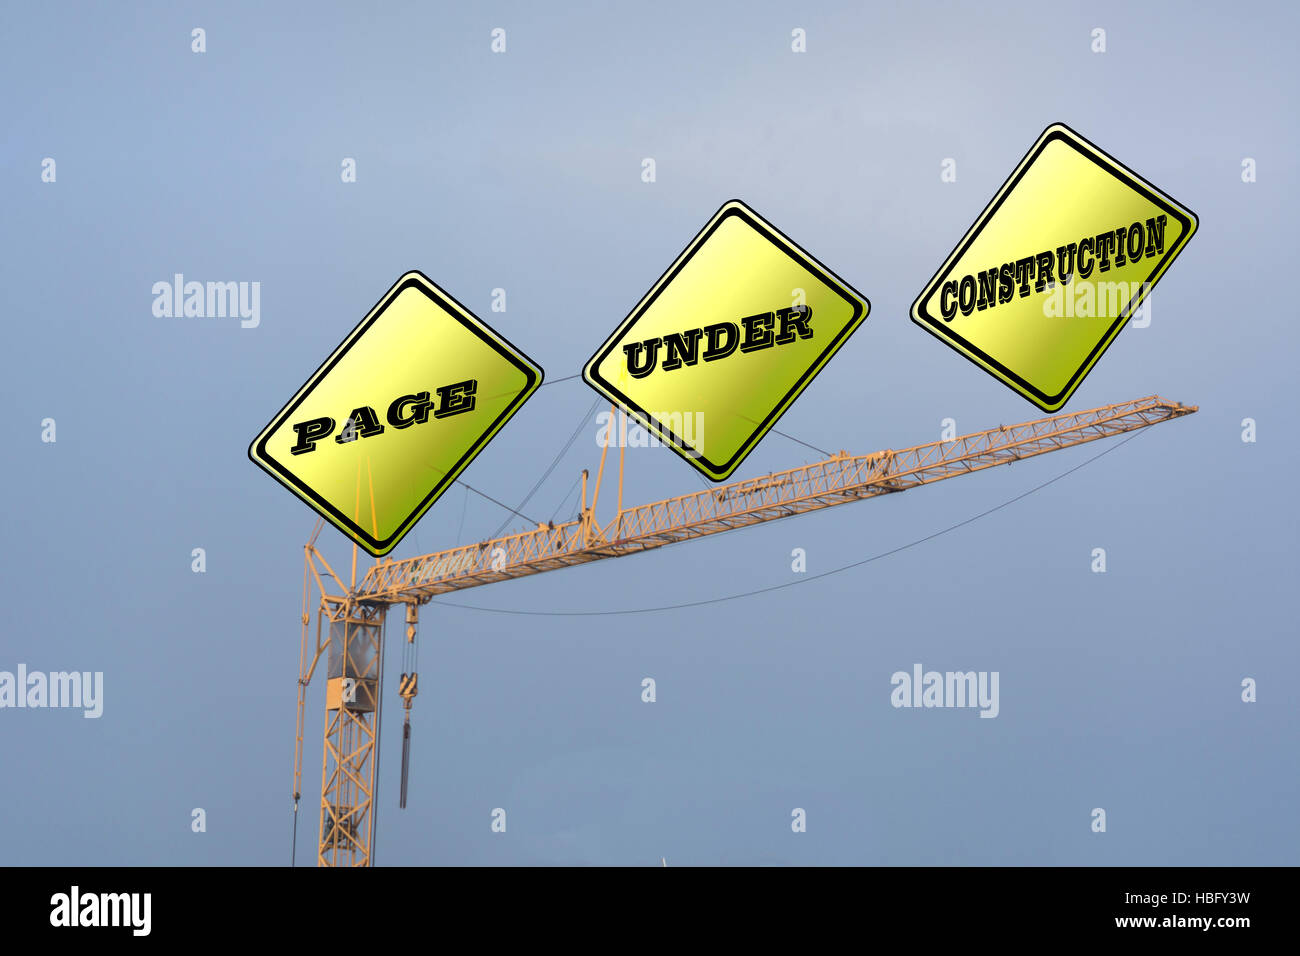 Crane labeled Page Under Construction - Stock Image